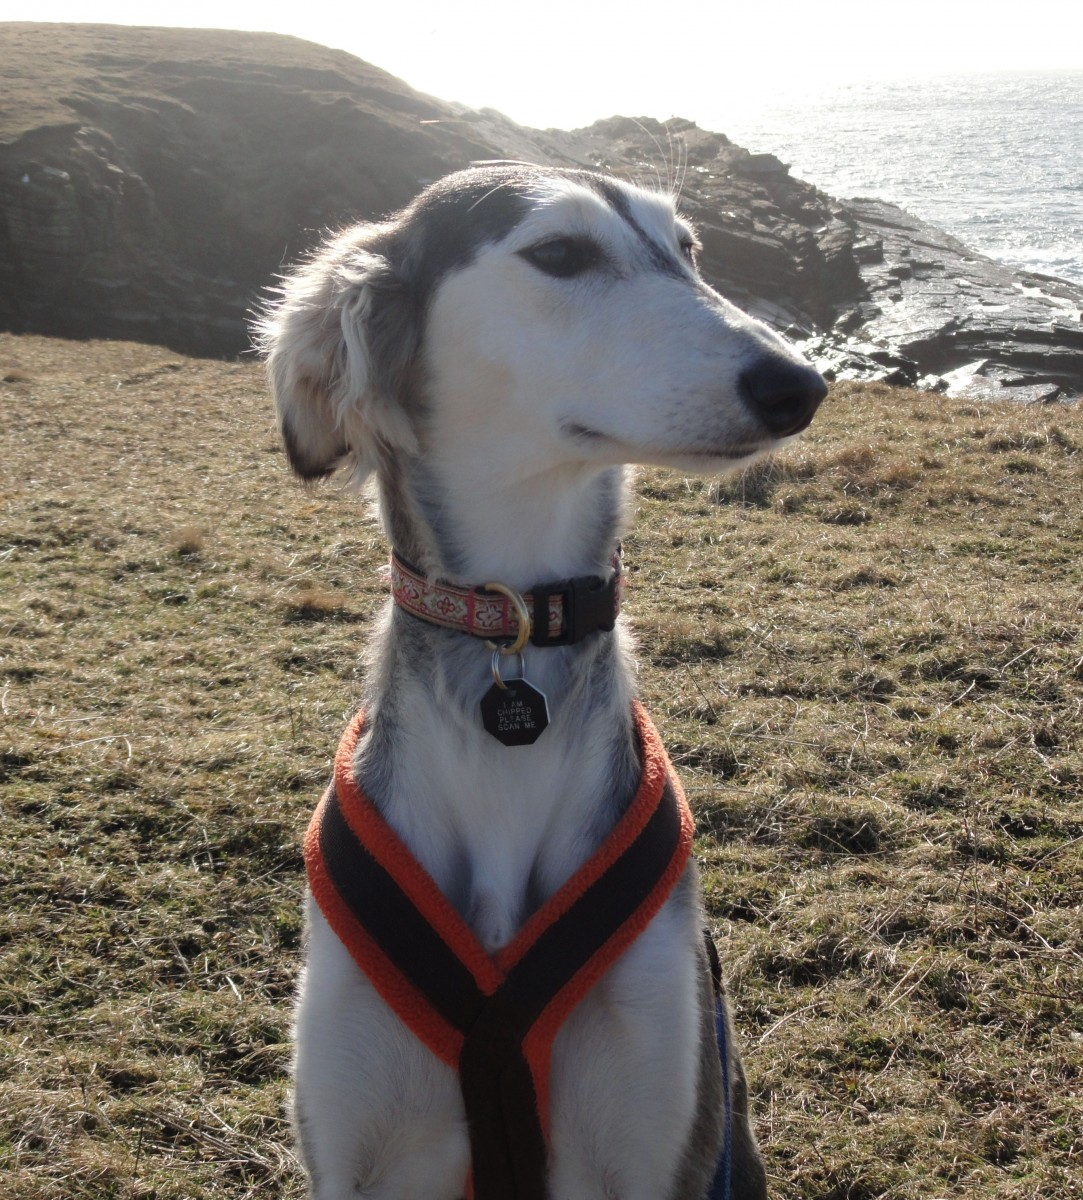 Salukis appear genetically different because they were geographically isolated and were not part of the 19th century Victorian-initiated Kennel Clubs that blended lineages to create most of the breeds we keep as pets today. Saluki-like animals appear on ancient Egyptian tombs but the modern-day breed is not the same. (Keith Dobney)